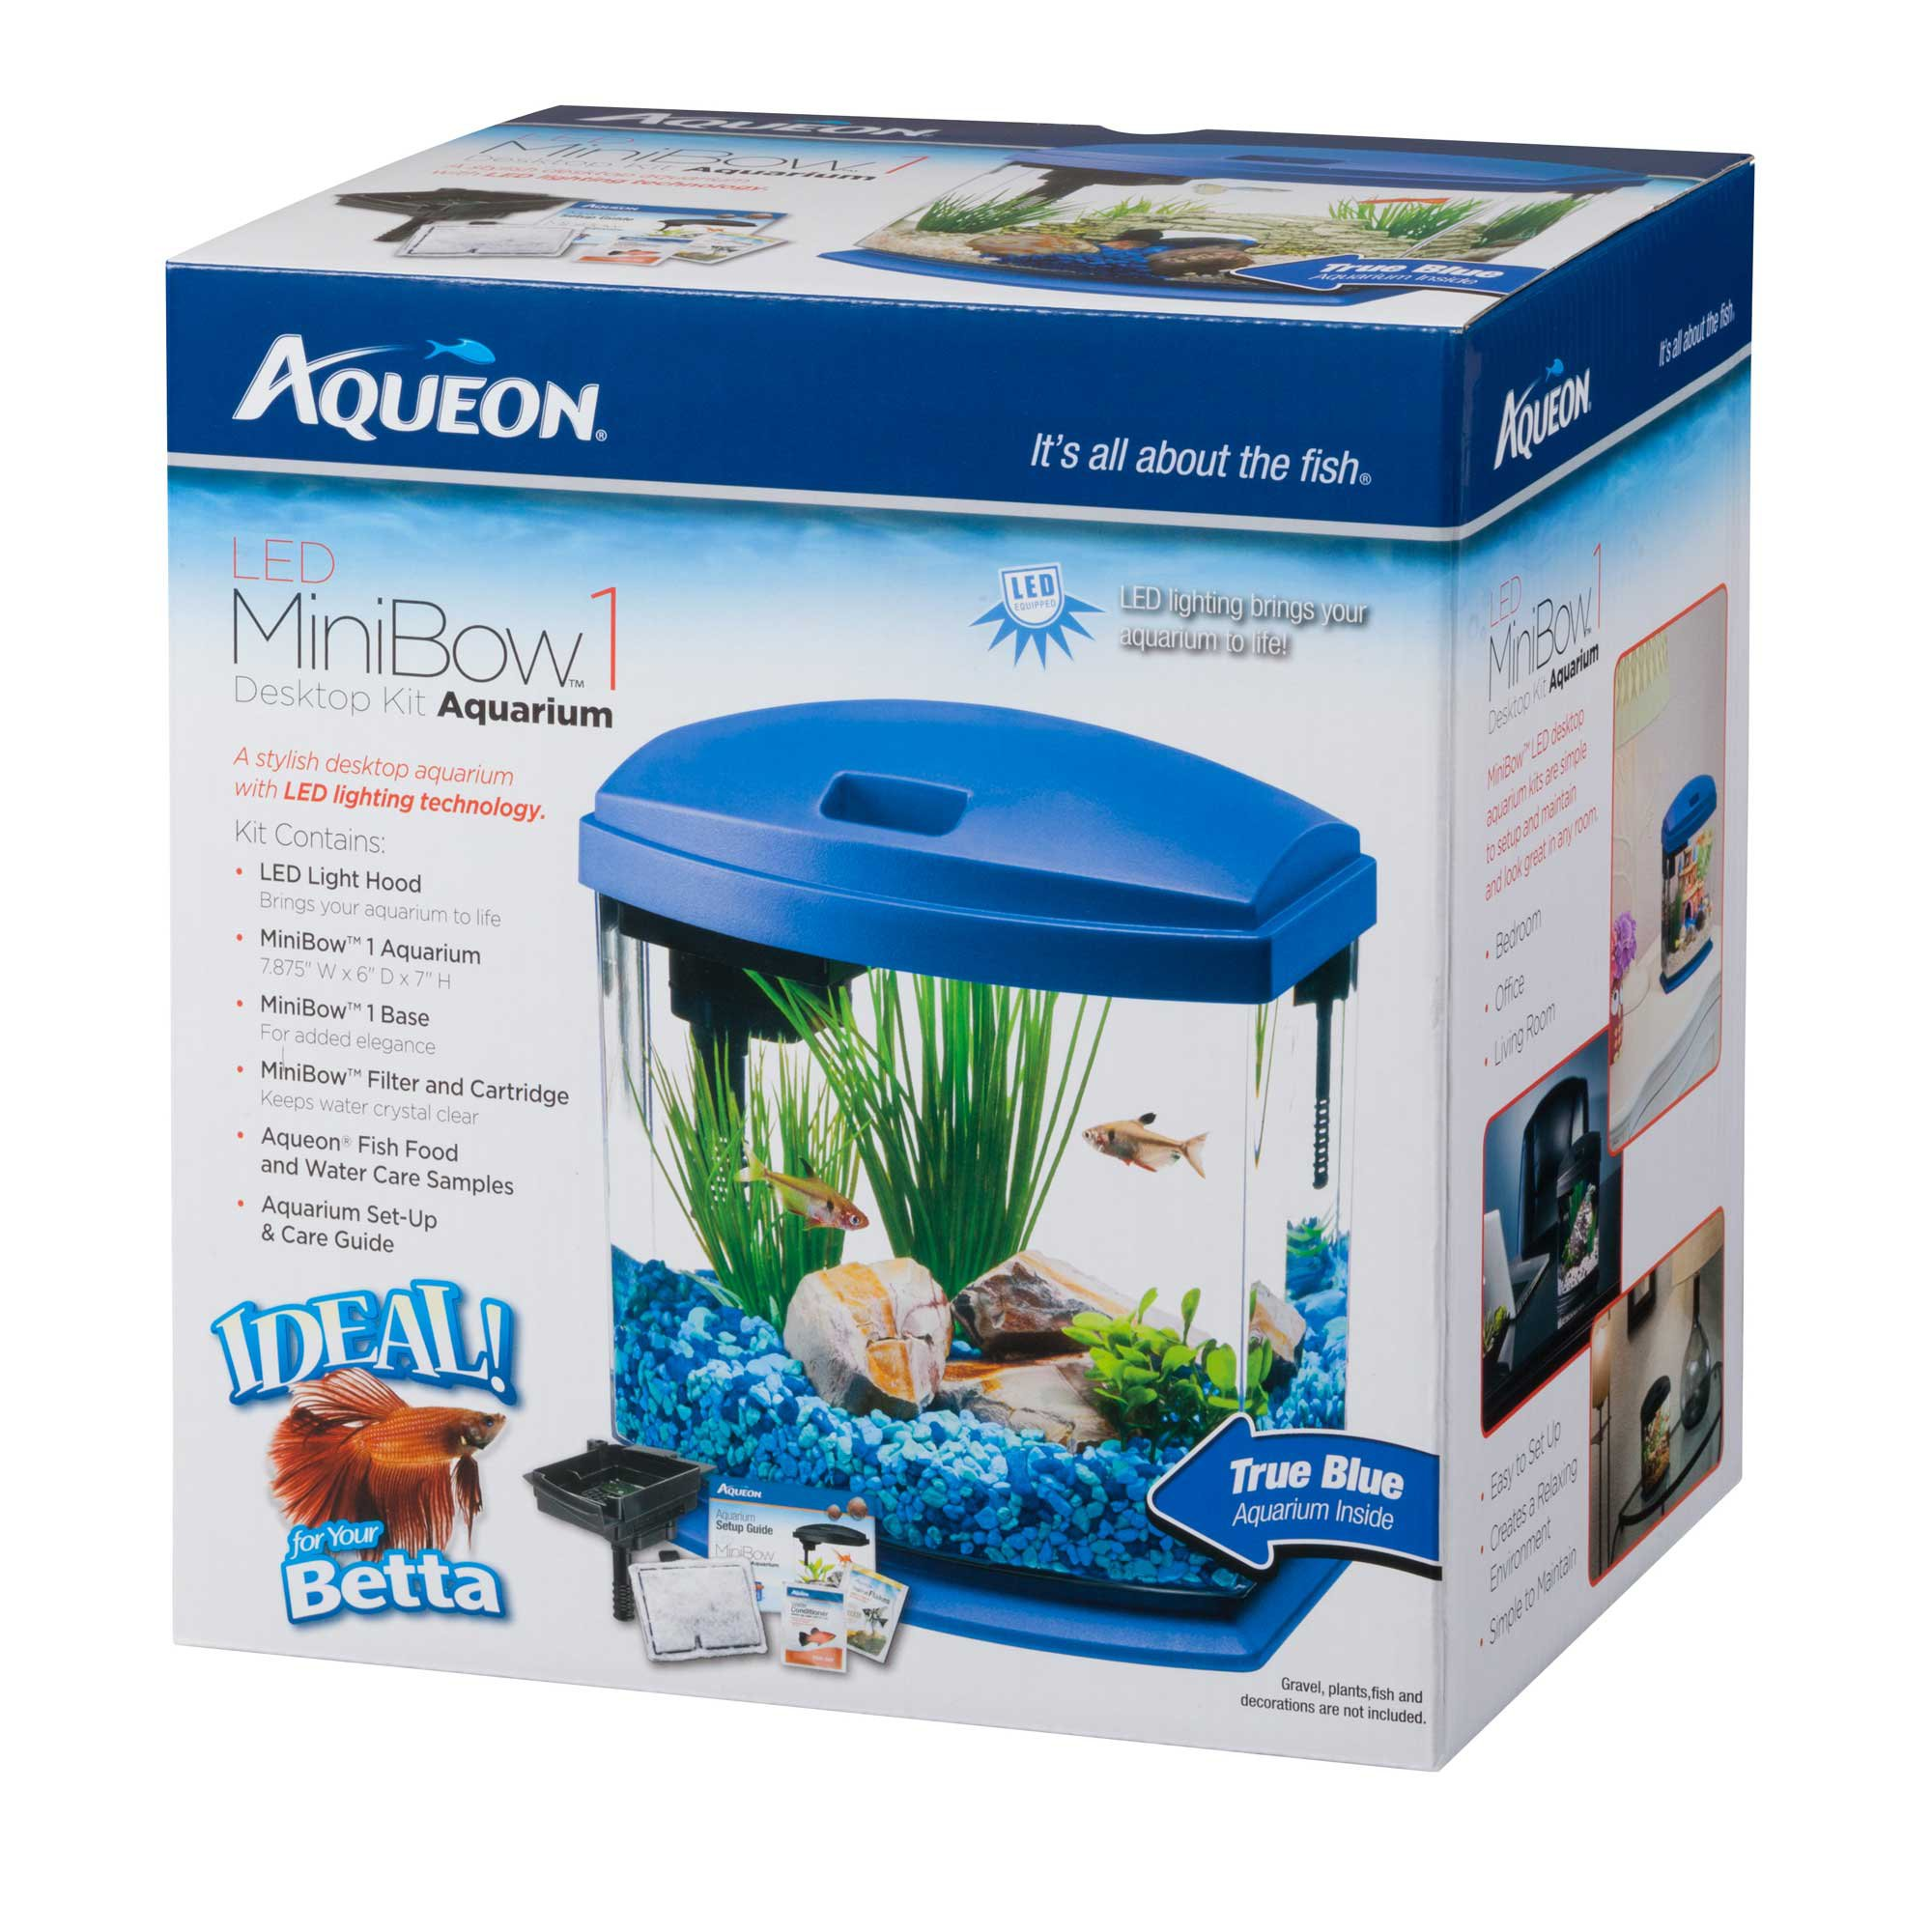 feeder for blocks petcostore product center automatic en day plax shop balance aquarium betta food pro penn fish petco